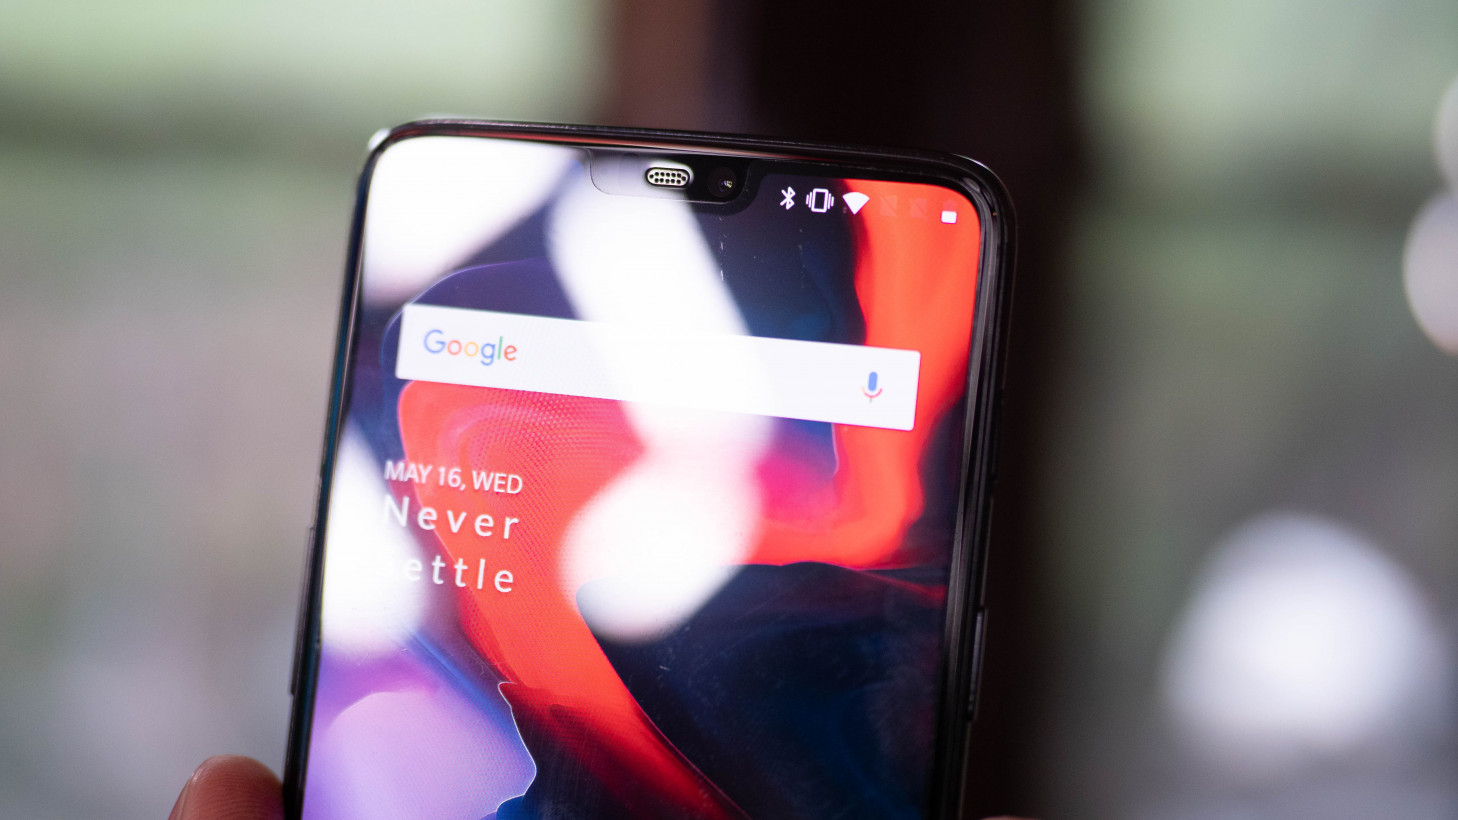 OnePlus 6: Android P Developer Preview beta 2 débarque avec le support de Google Lens